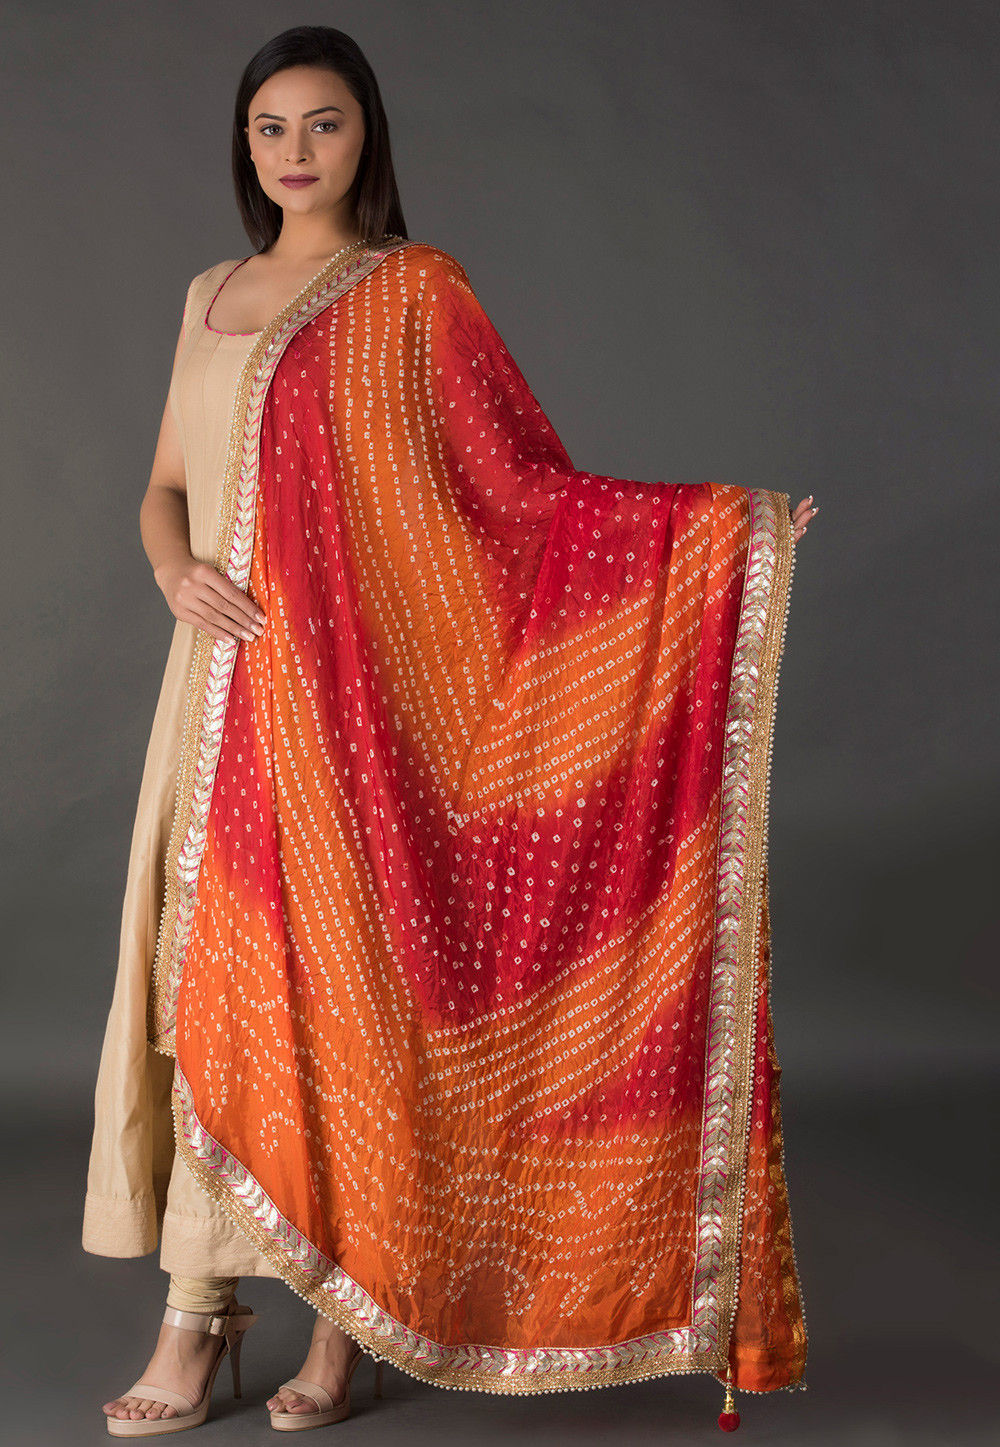 Bandhej Printed Art Silk Dupatta in Mustard and Red